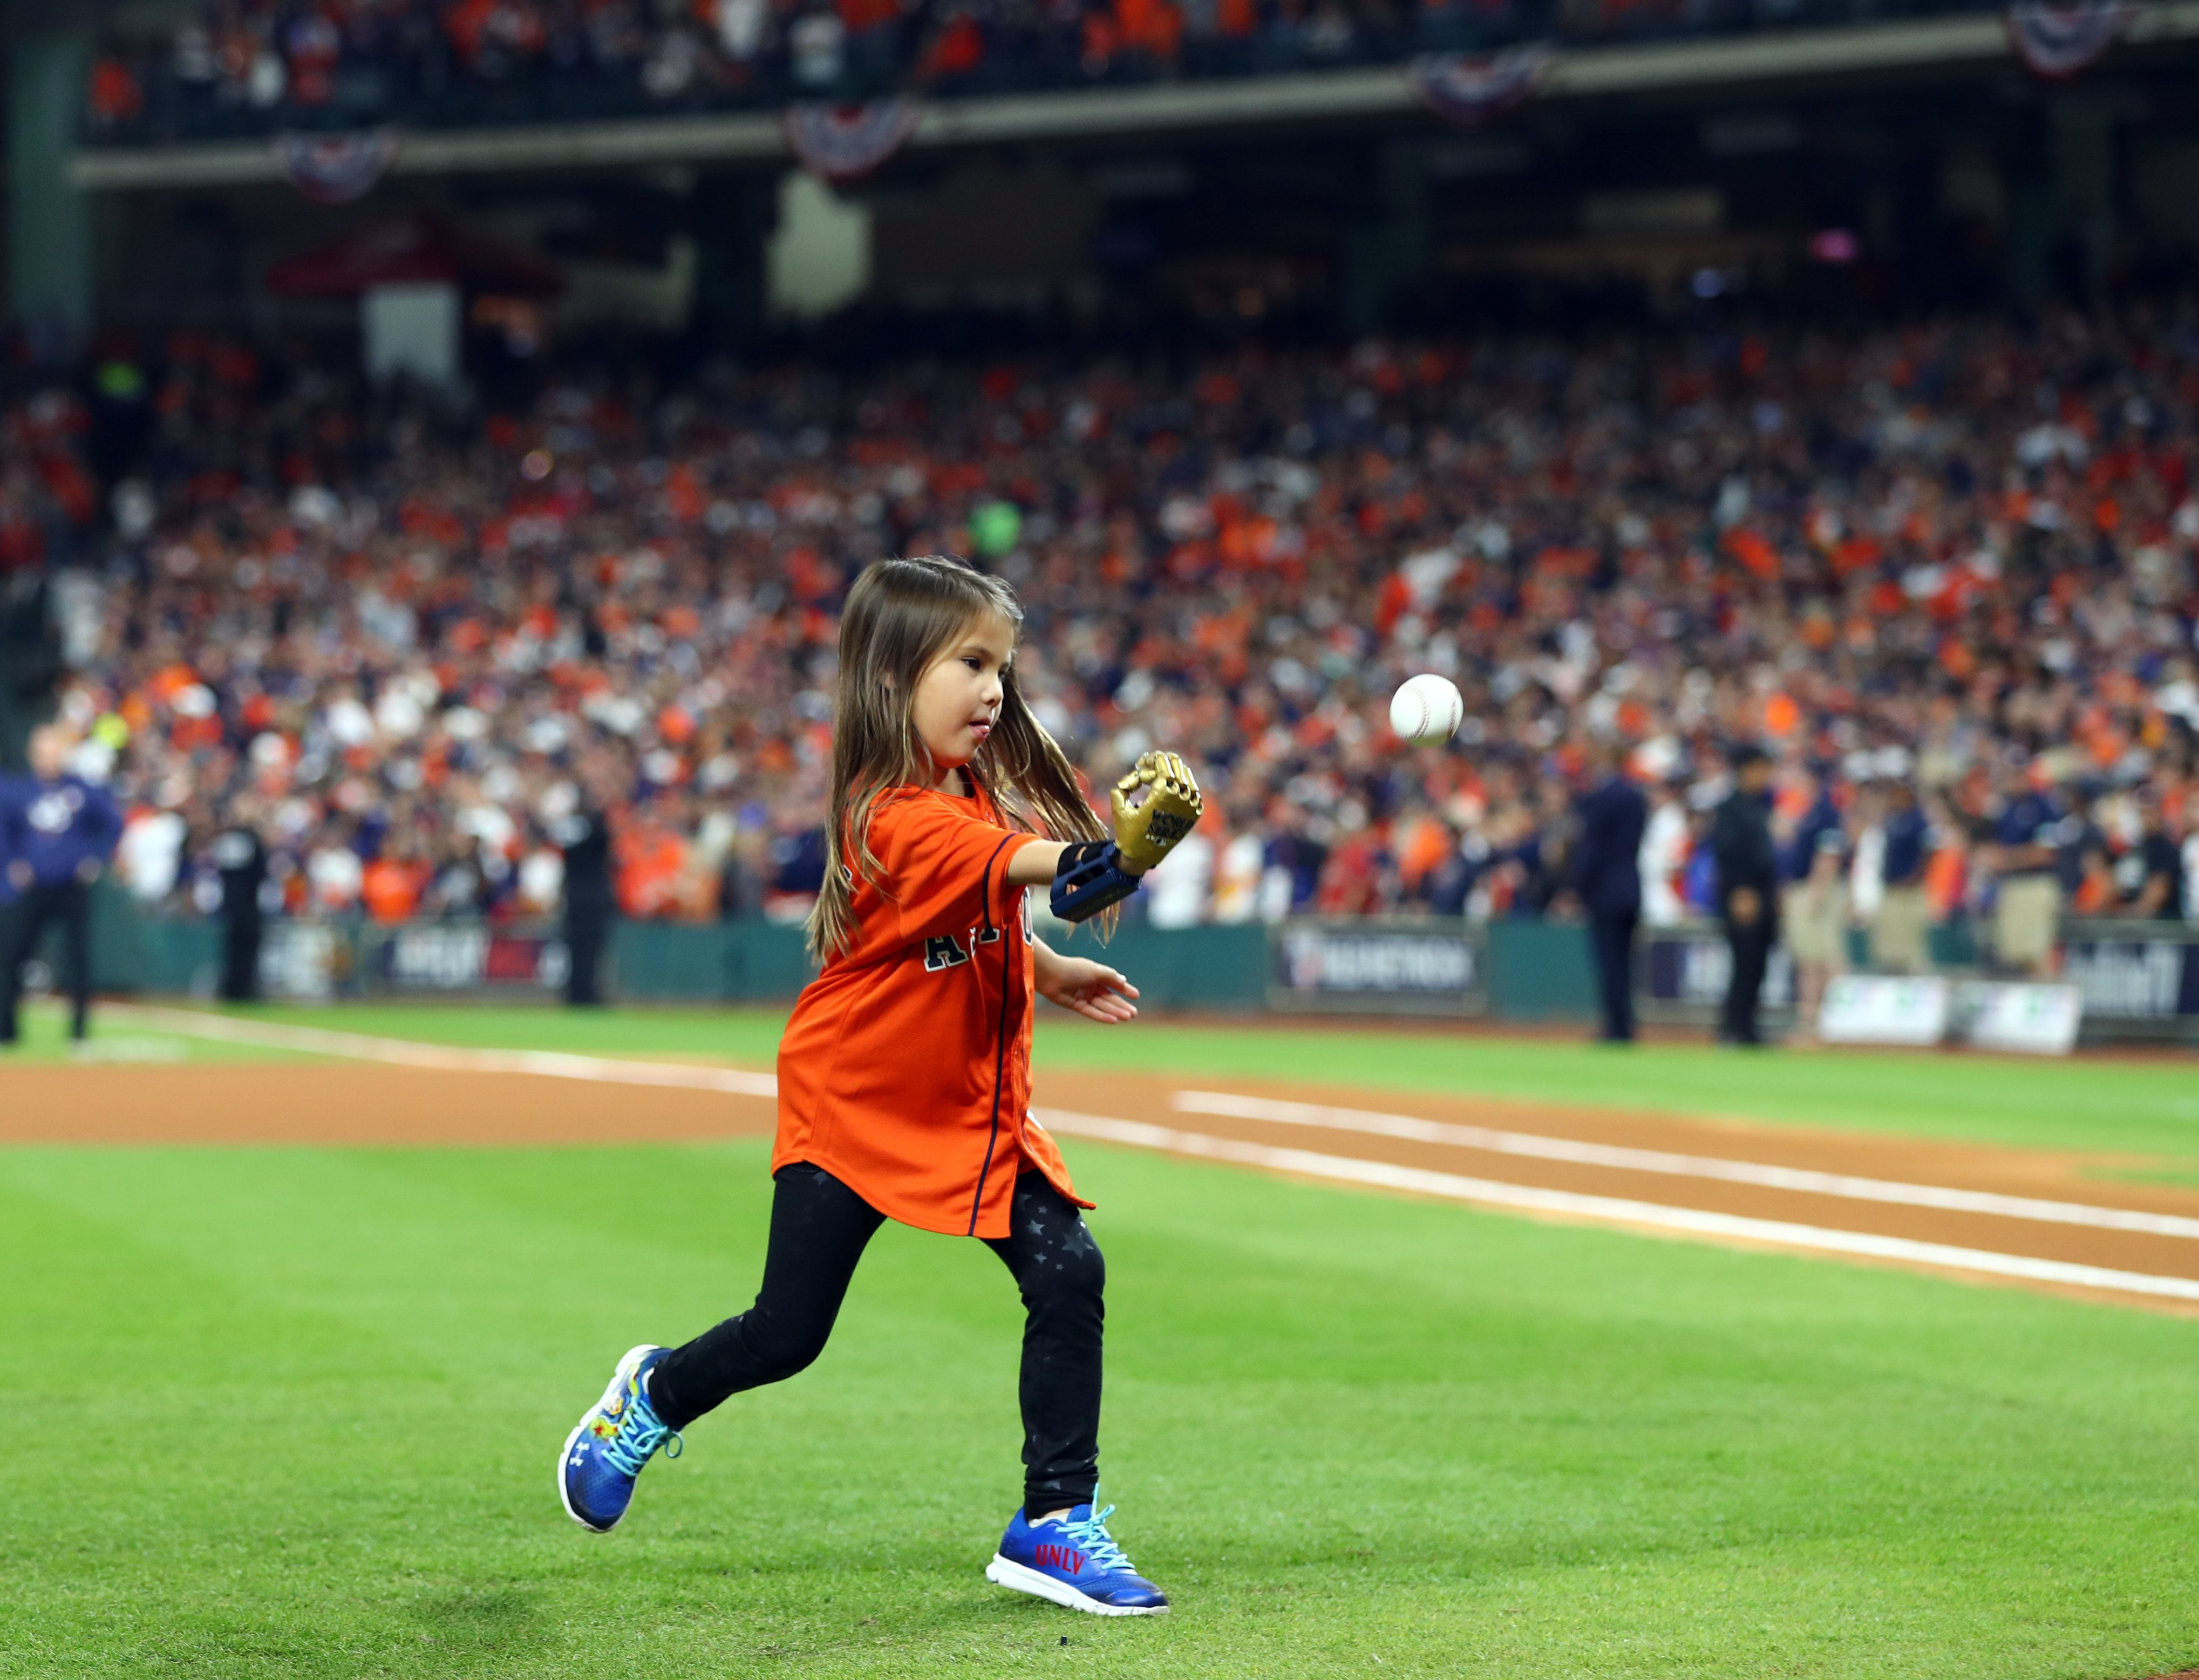 Hailey Dawson reached an incredible milestone on her journey to make Major League Baseball history.